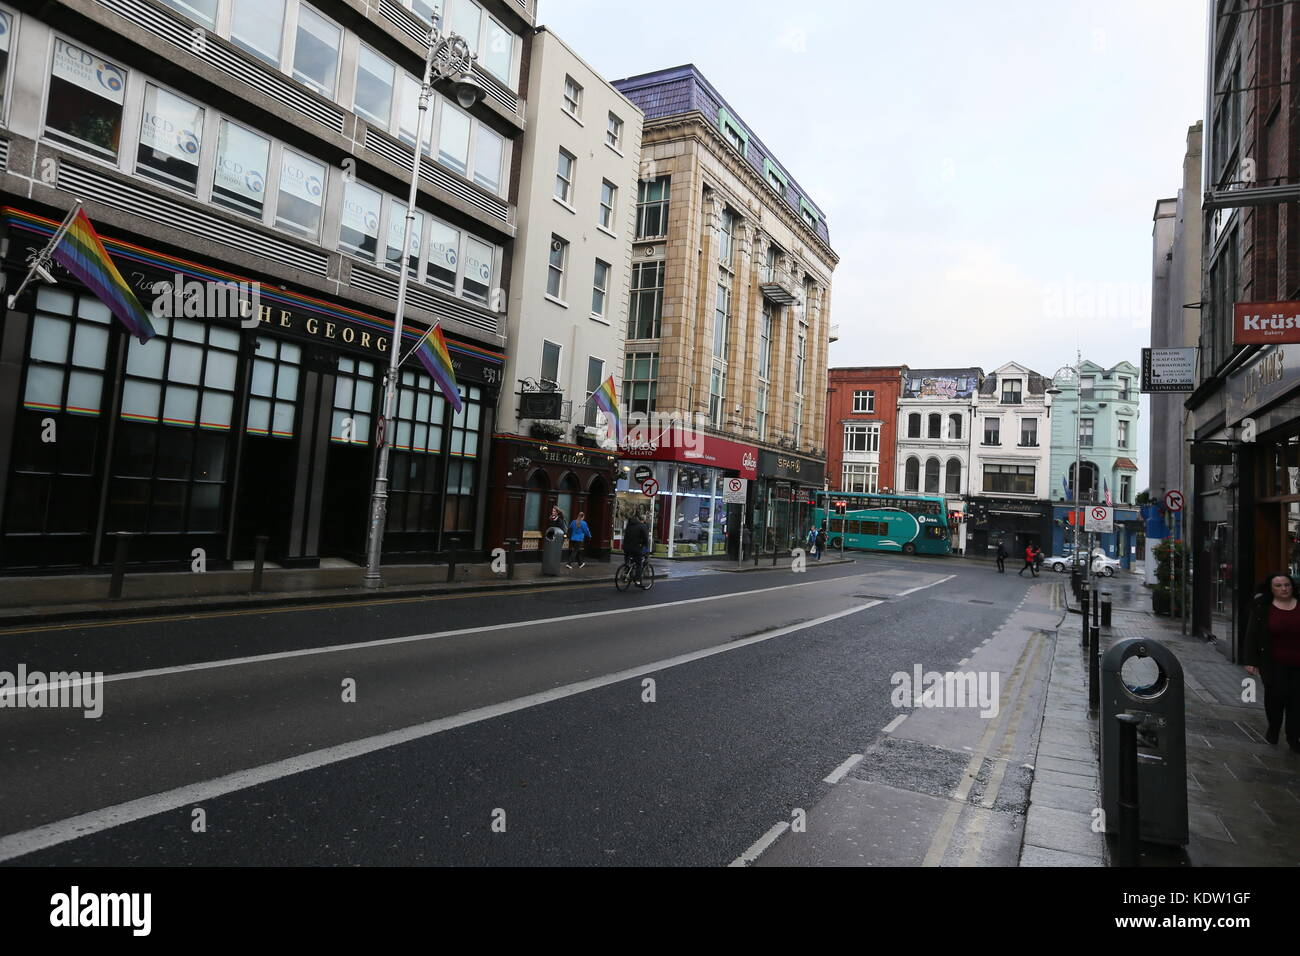 Dublin, Ireland. 16th Oct, 2017. A view of a quiet George's Street in Dublin city centre during the build up - Stock Image